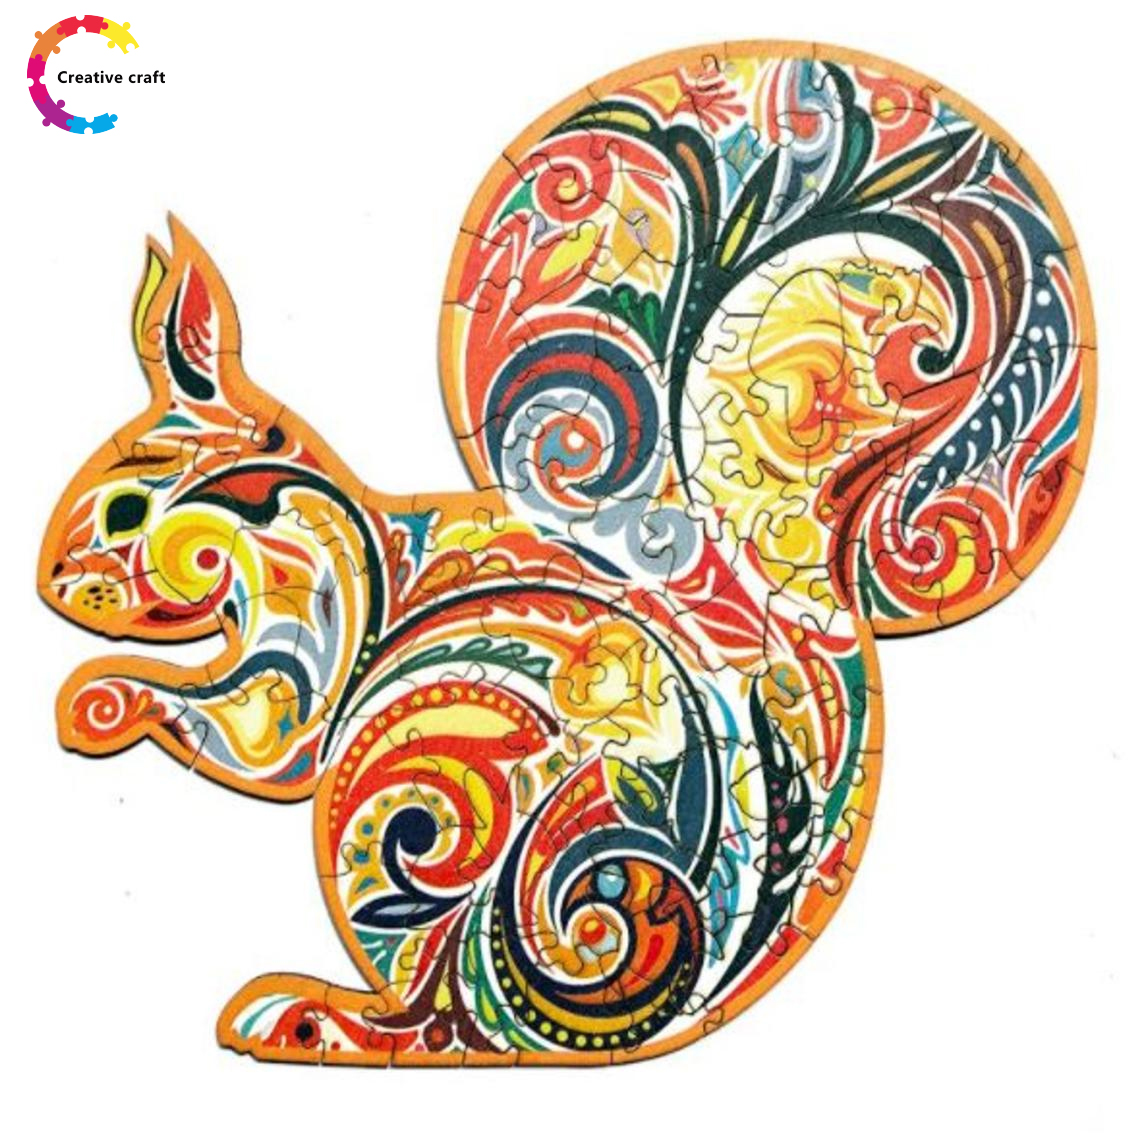 Wooden Jigsaw Puzzle Witty Squirrel